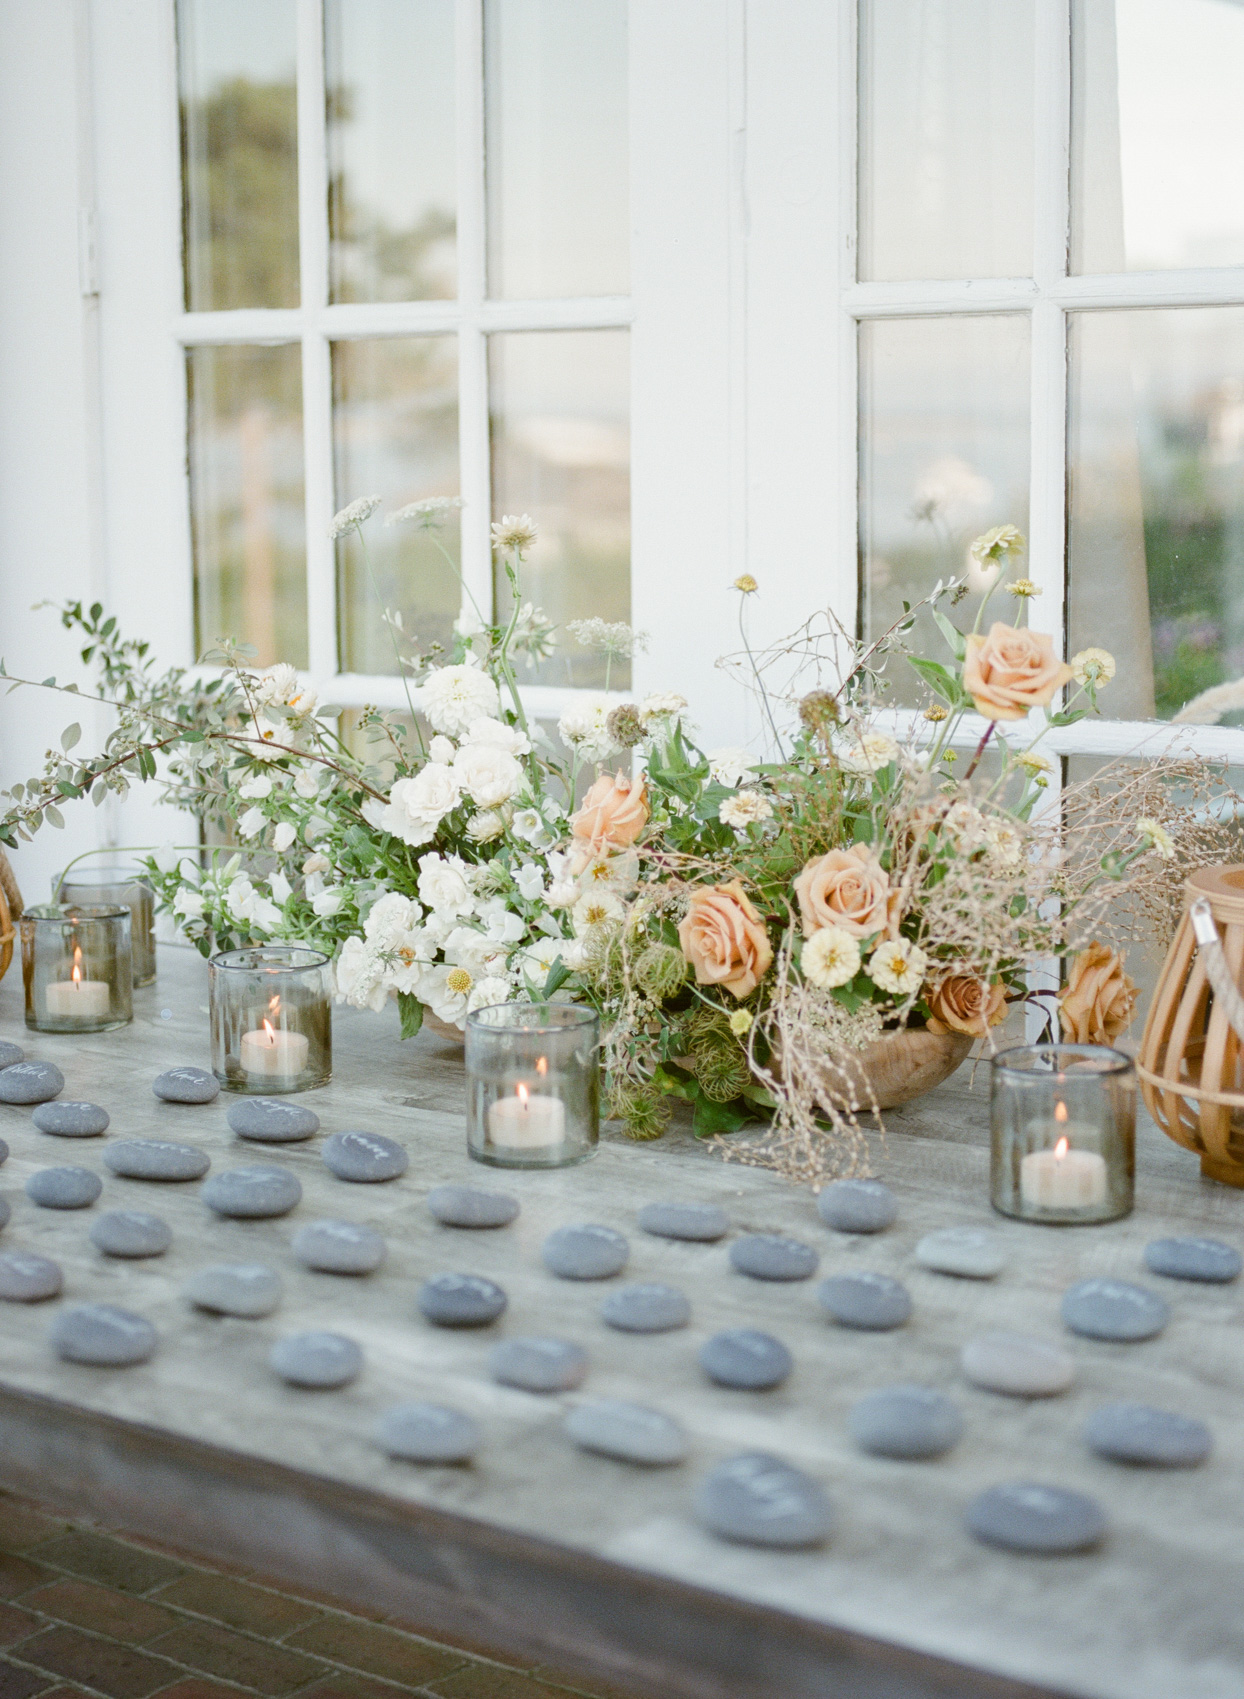 wooden table with rock escort cards, candles, and floral bouquets